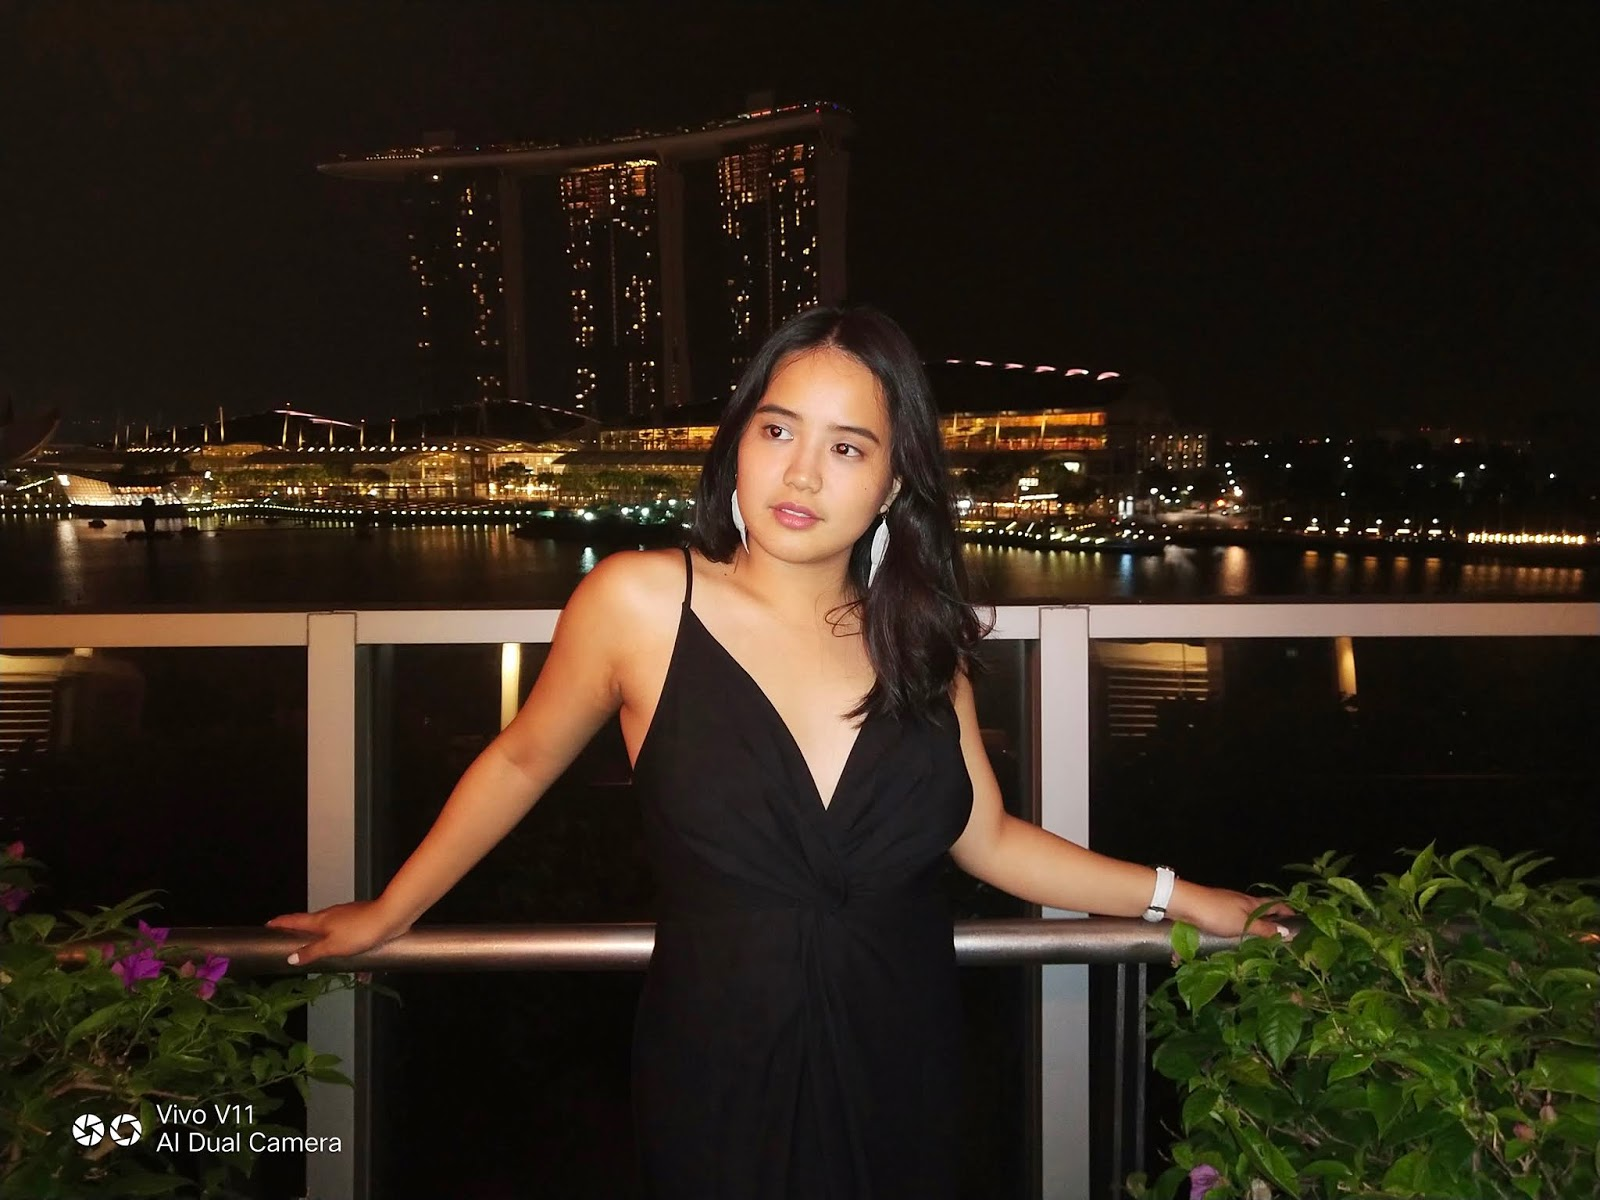 Vivo V11 Takes Night Time Perfectly Shot Photos With Ease And Confidence Camera 8s Instax Shanghai Girl The Cameras Ever Popular Bokeh Effect Focus Of Photograph Is Enhanced A Blurry Thrown In For Added Drama